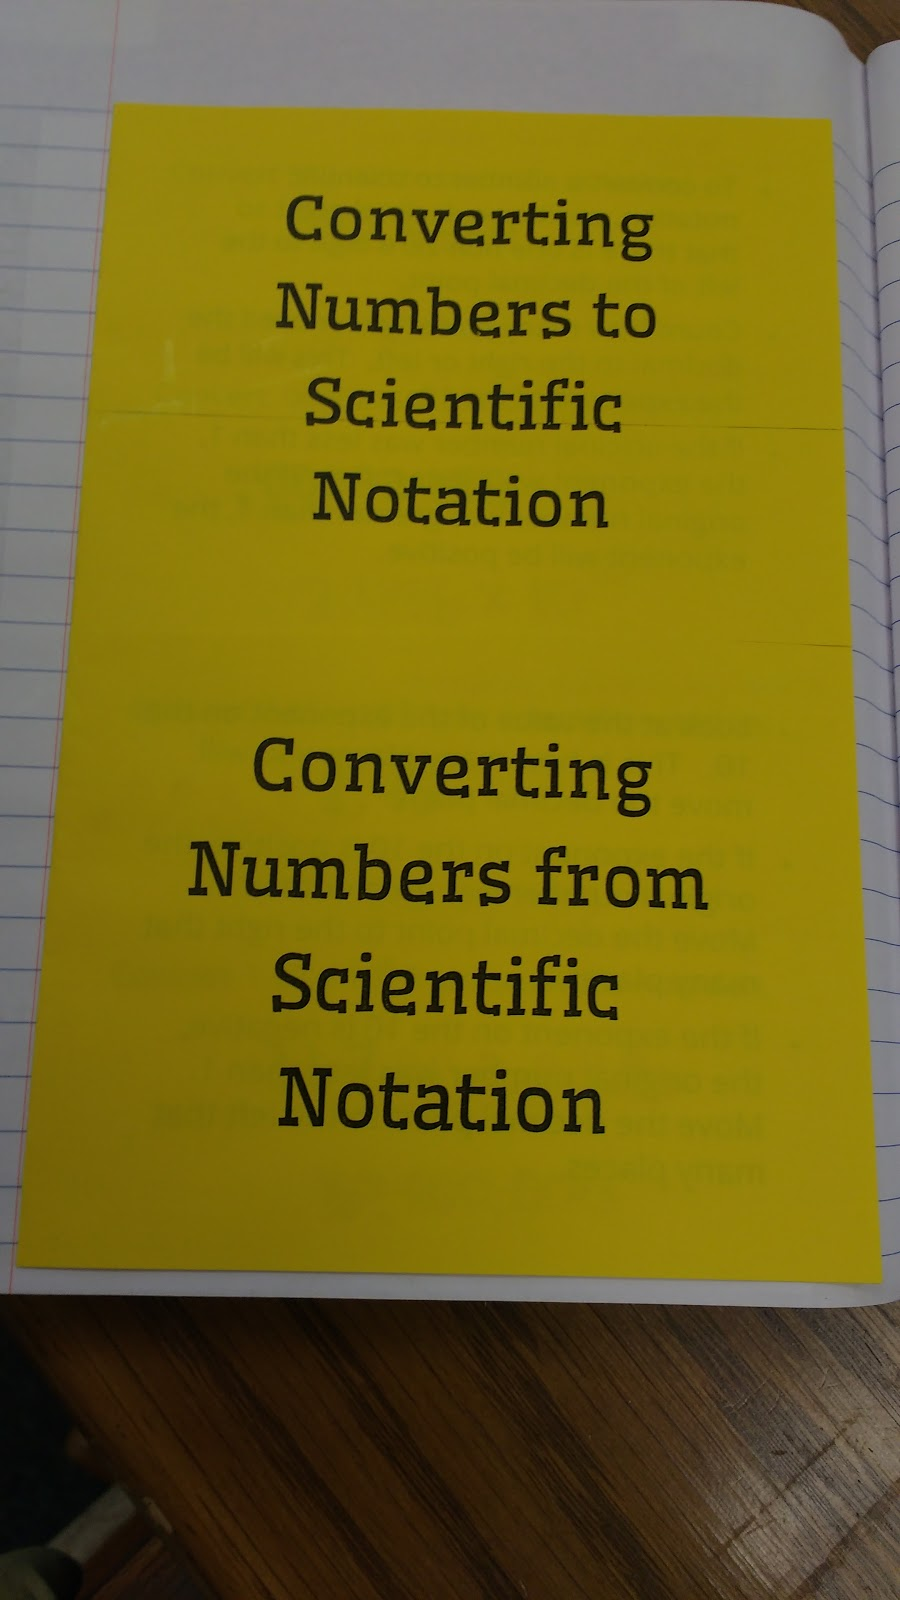 Math love scientific notation inb pages then we completed a foldable on converting to and from scientific notation falaconquin